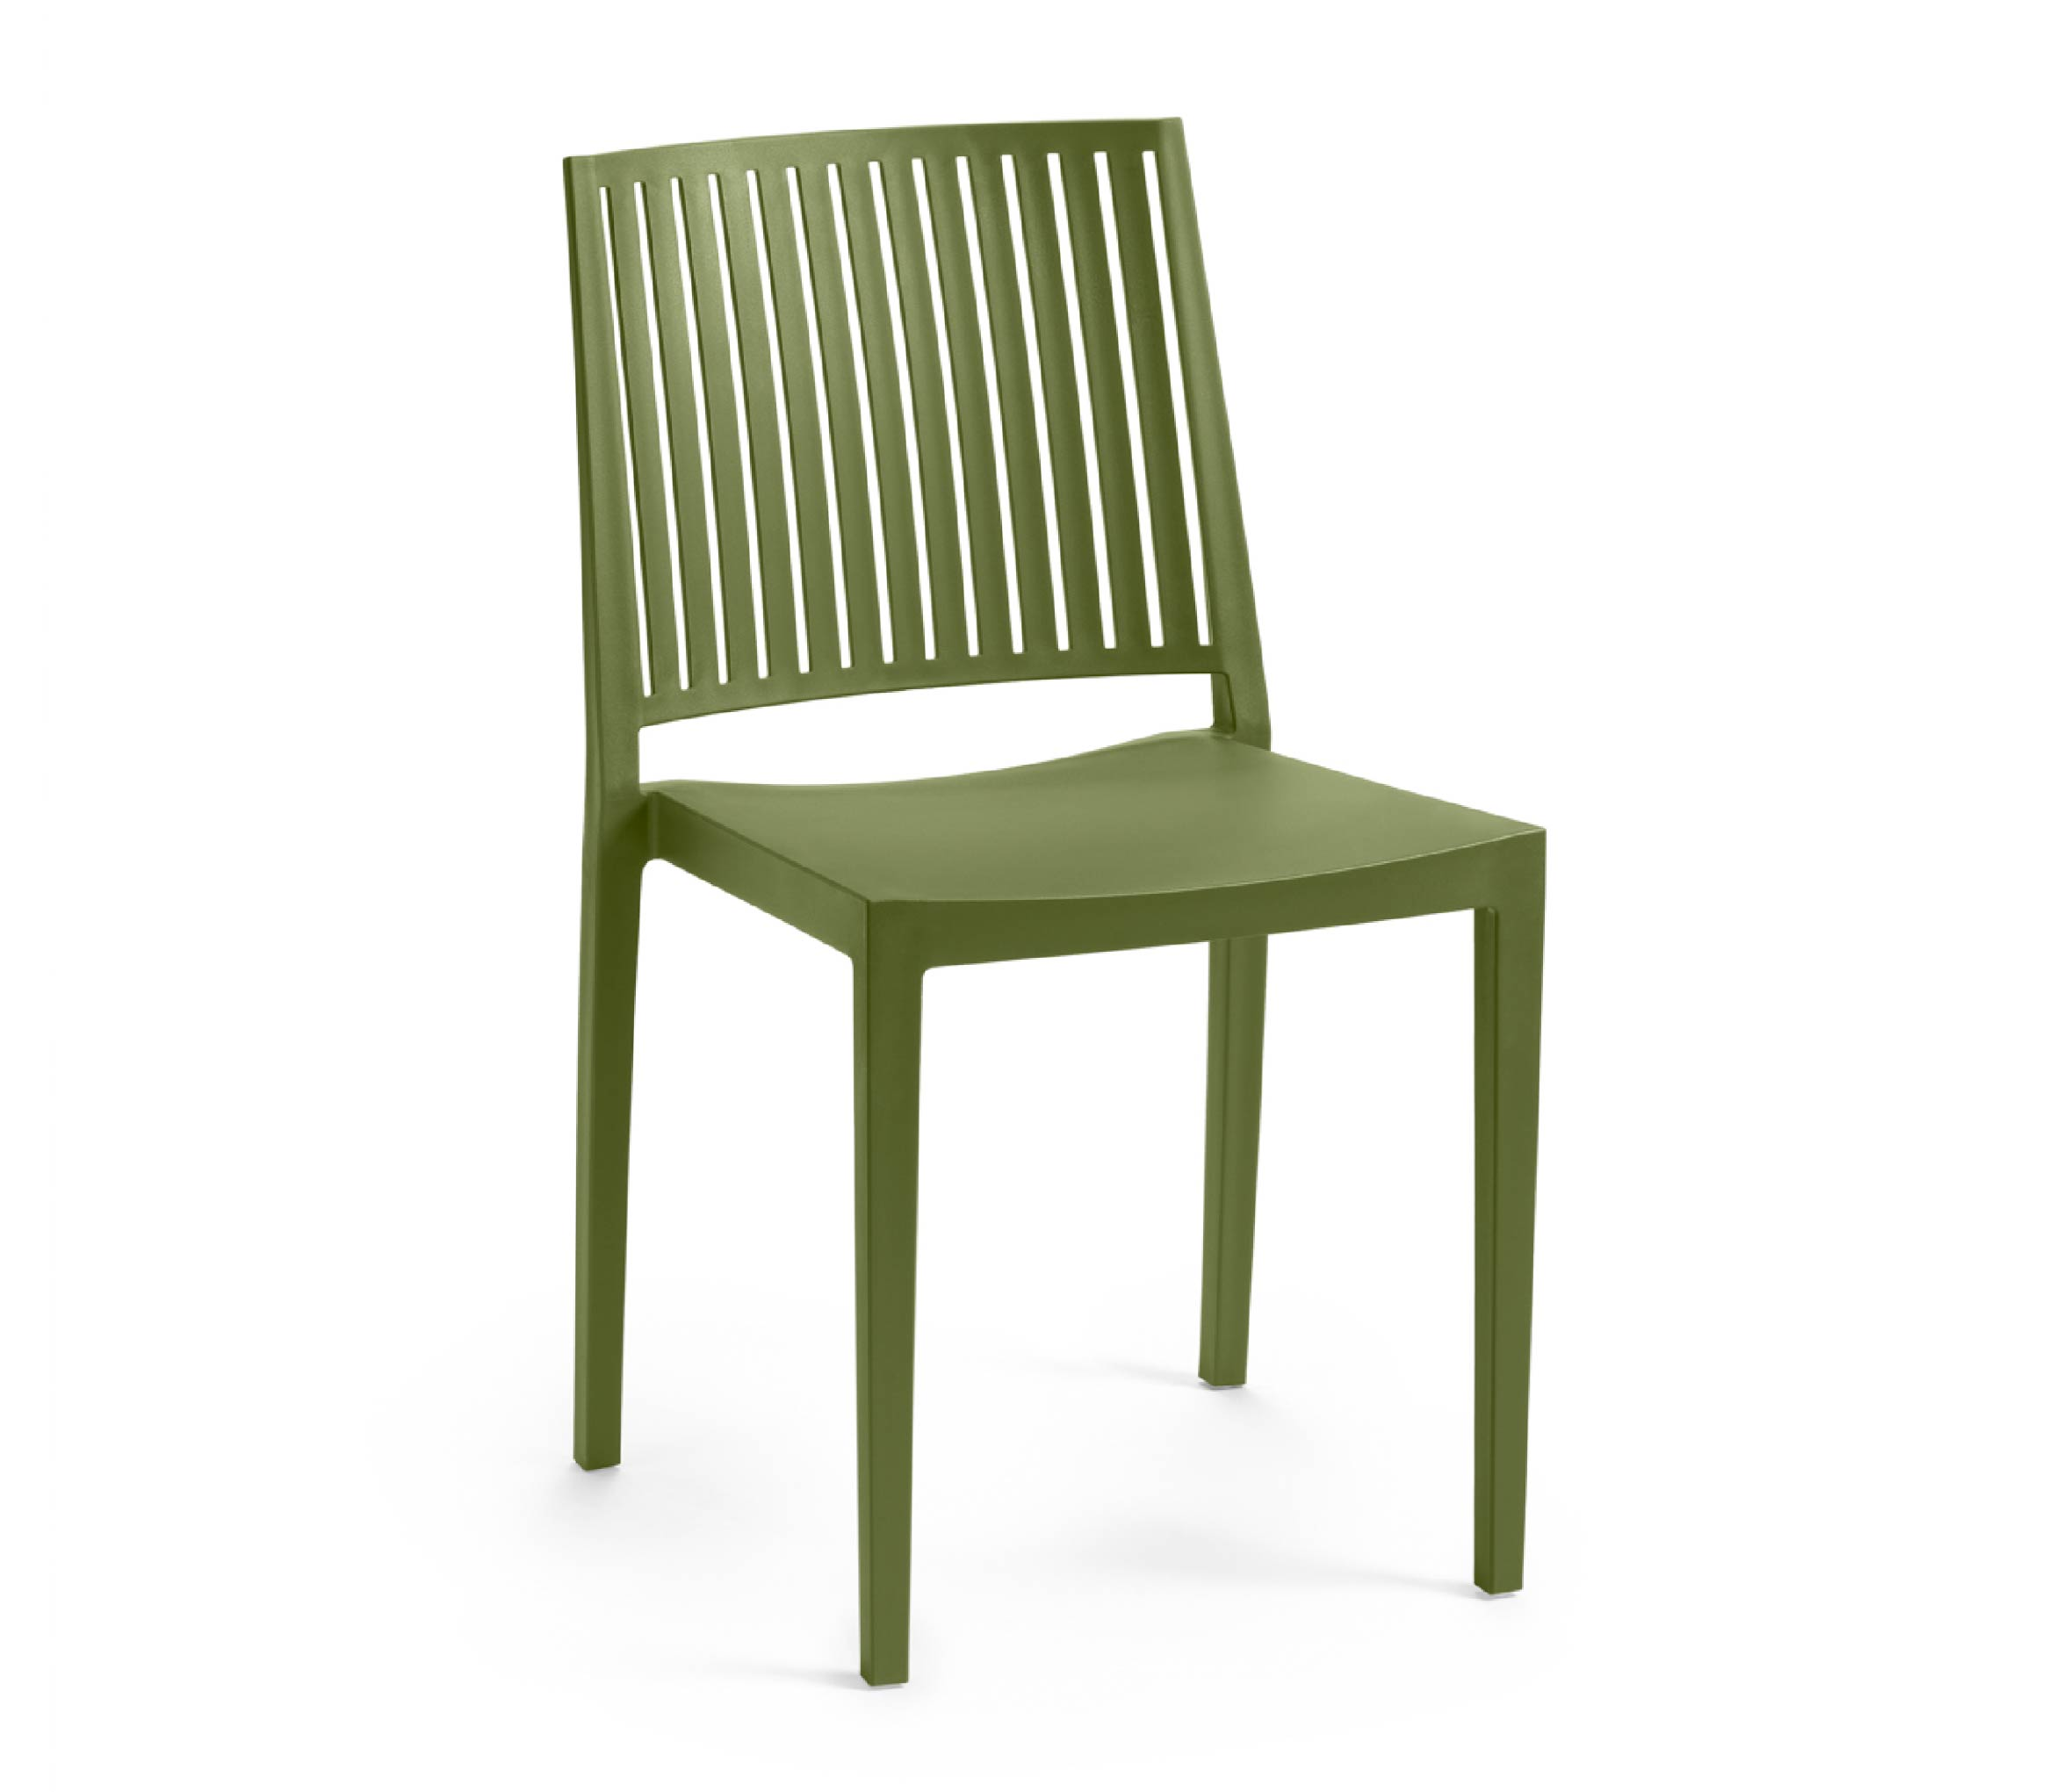 3 - TENSAI_FURNITURE_BARS_PLASTIC_green_olive_chair_color_white_background_514_001